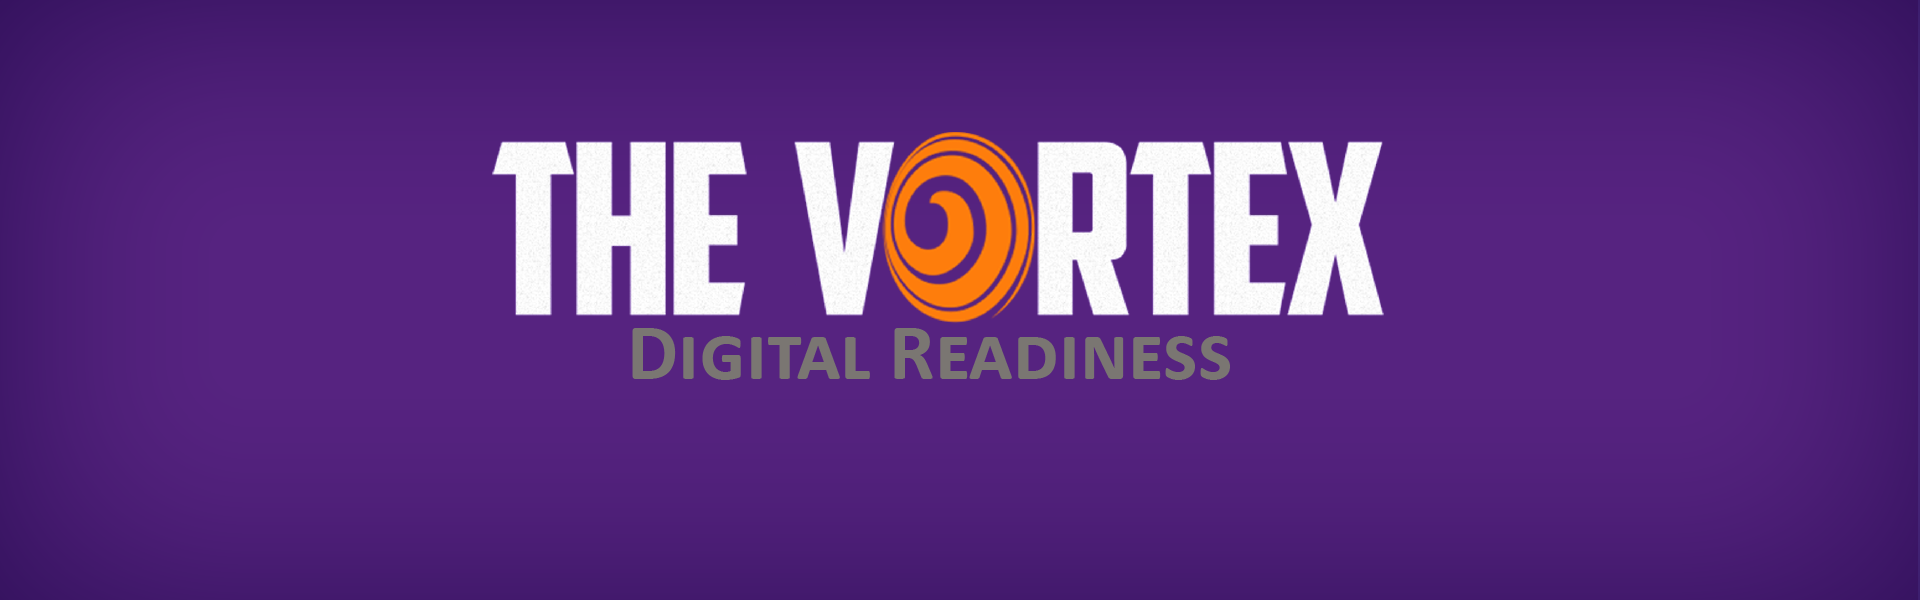 The Vortex - Digital readiness